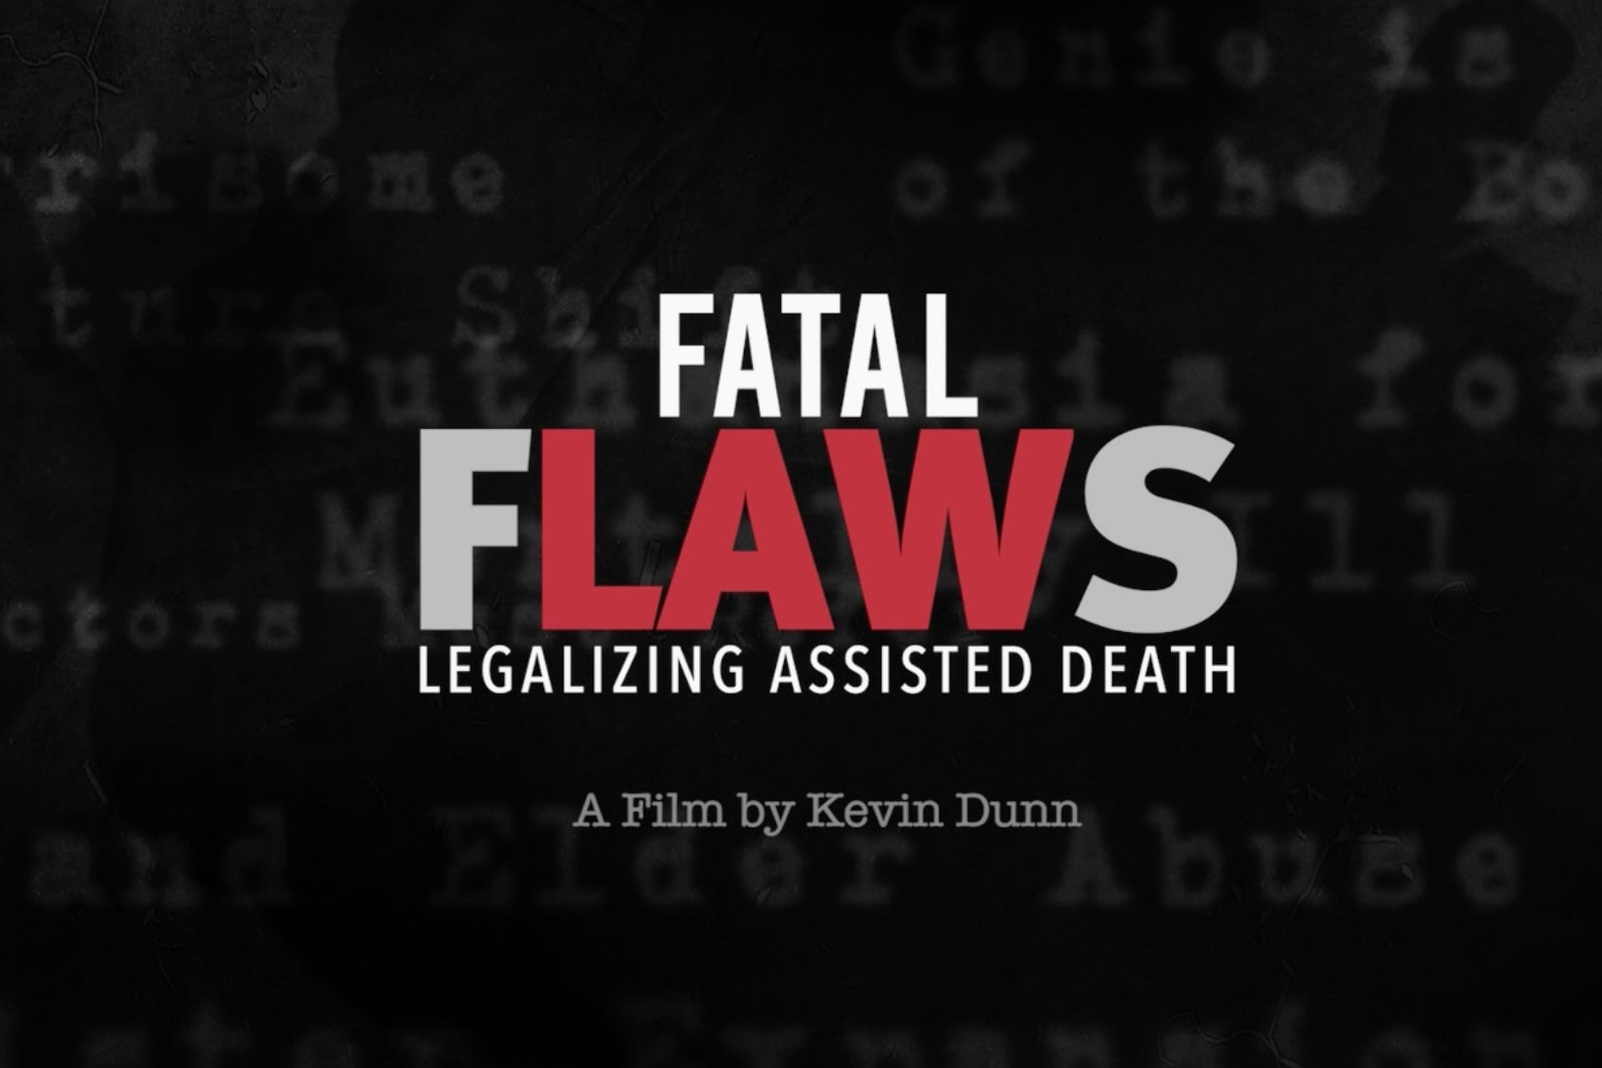 Fatal Flaws - A thought-provoking journey through Europe and North America to ask one of the most fundamental philosophical questions of our time: should we be giving doctors the right in law to end the life of others by euthanasia or assisted suicide? Filmmaker Kevin Dunn uses powerful testimonies and expert opinion from both sides of the issue to uncover how these highly disputed laws affect society over time.Distributed by Sideways Film (UK)